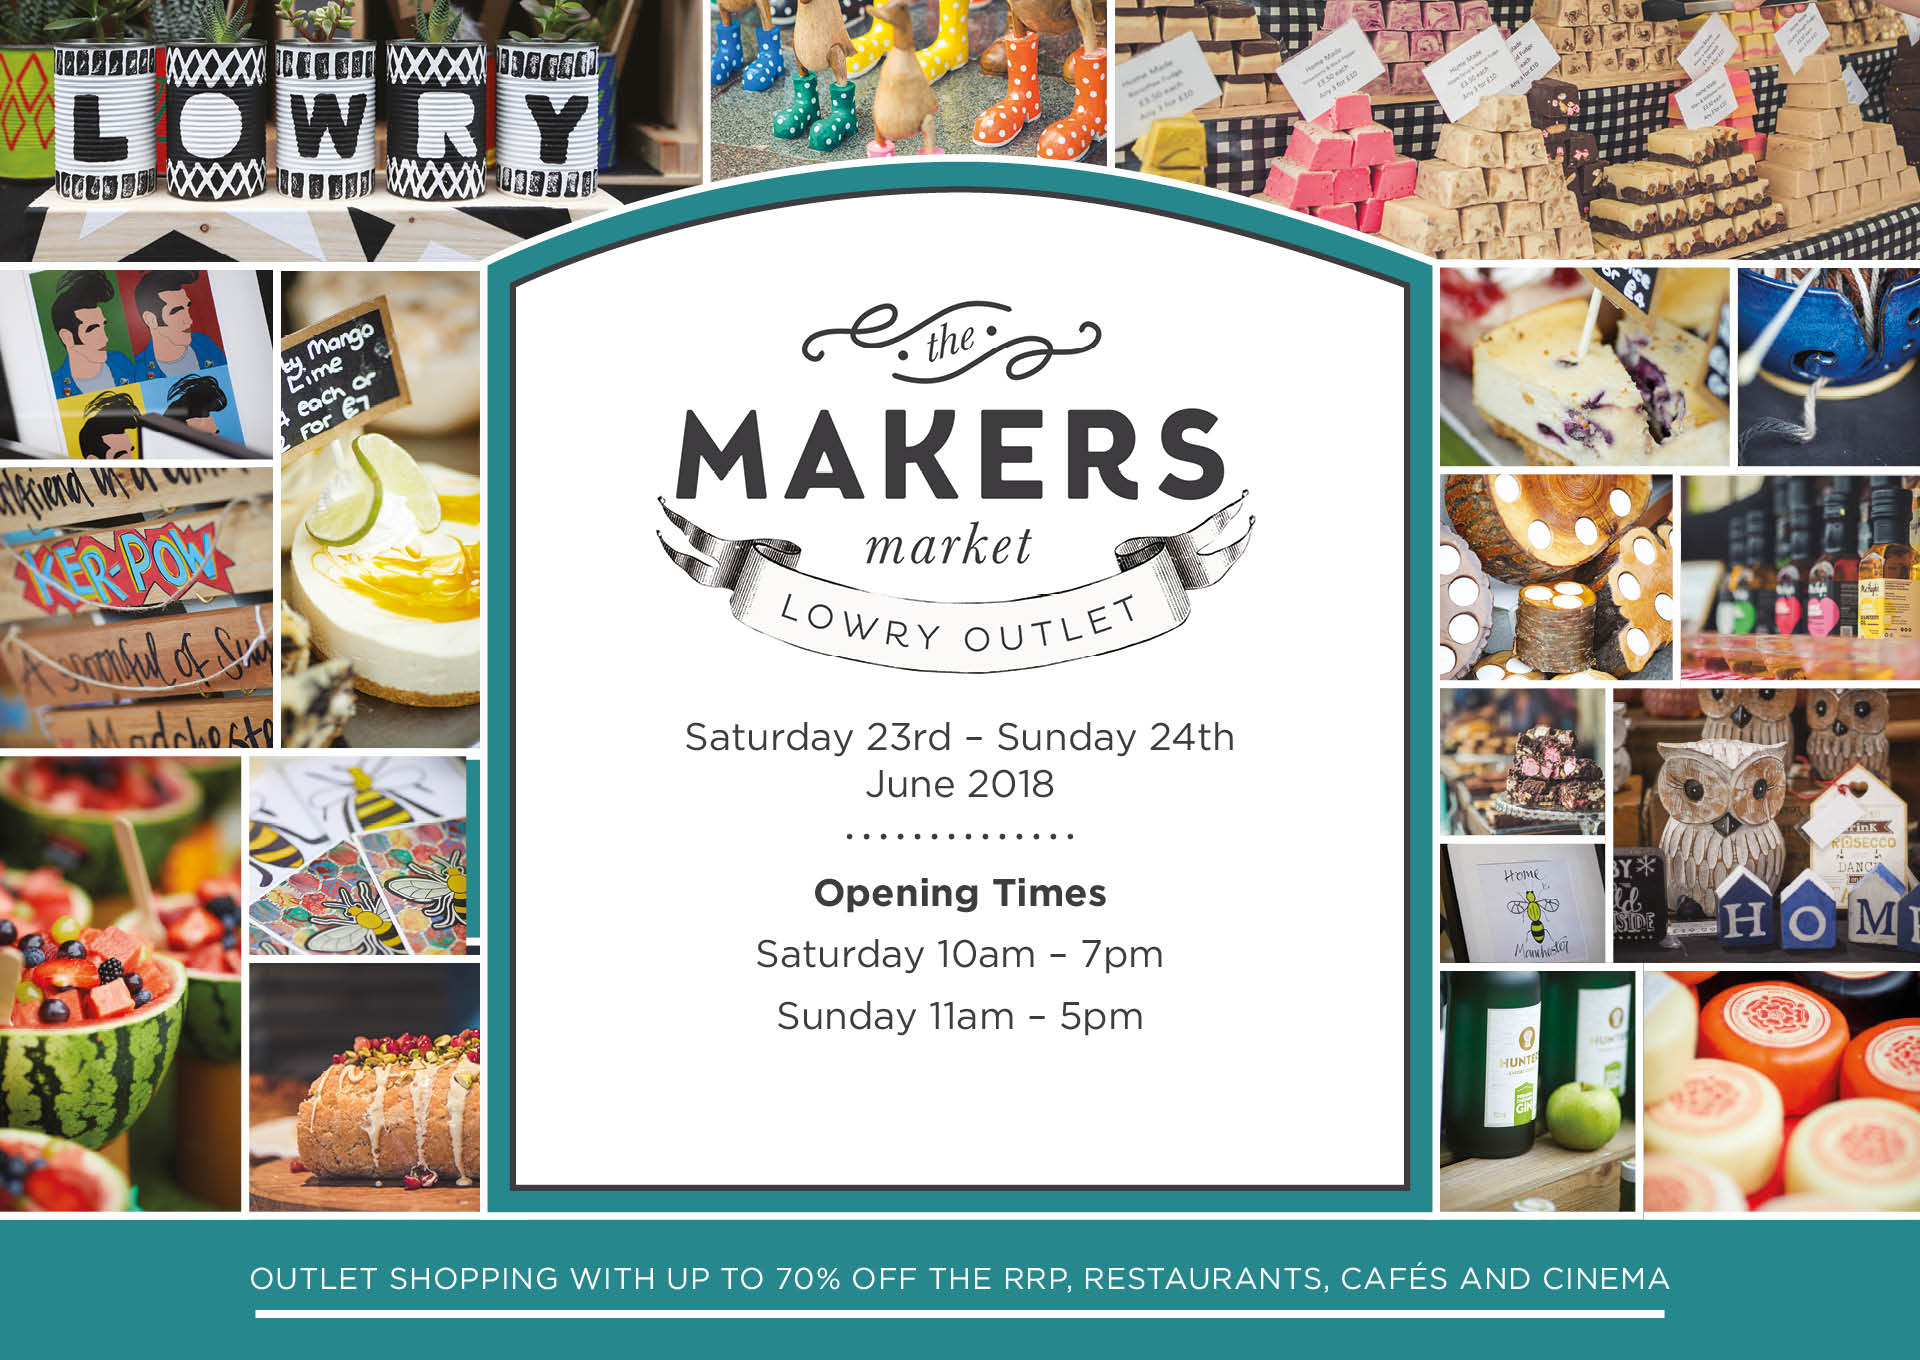 Join us for the Makers Market